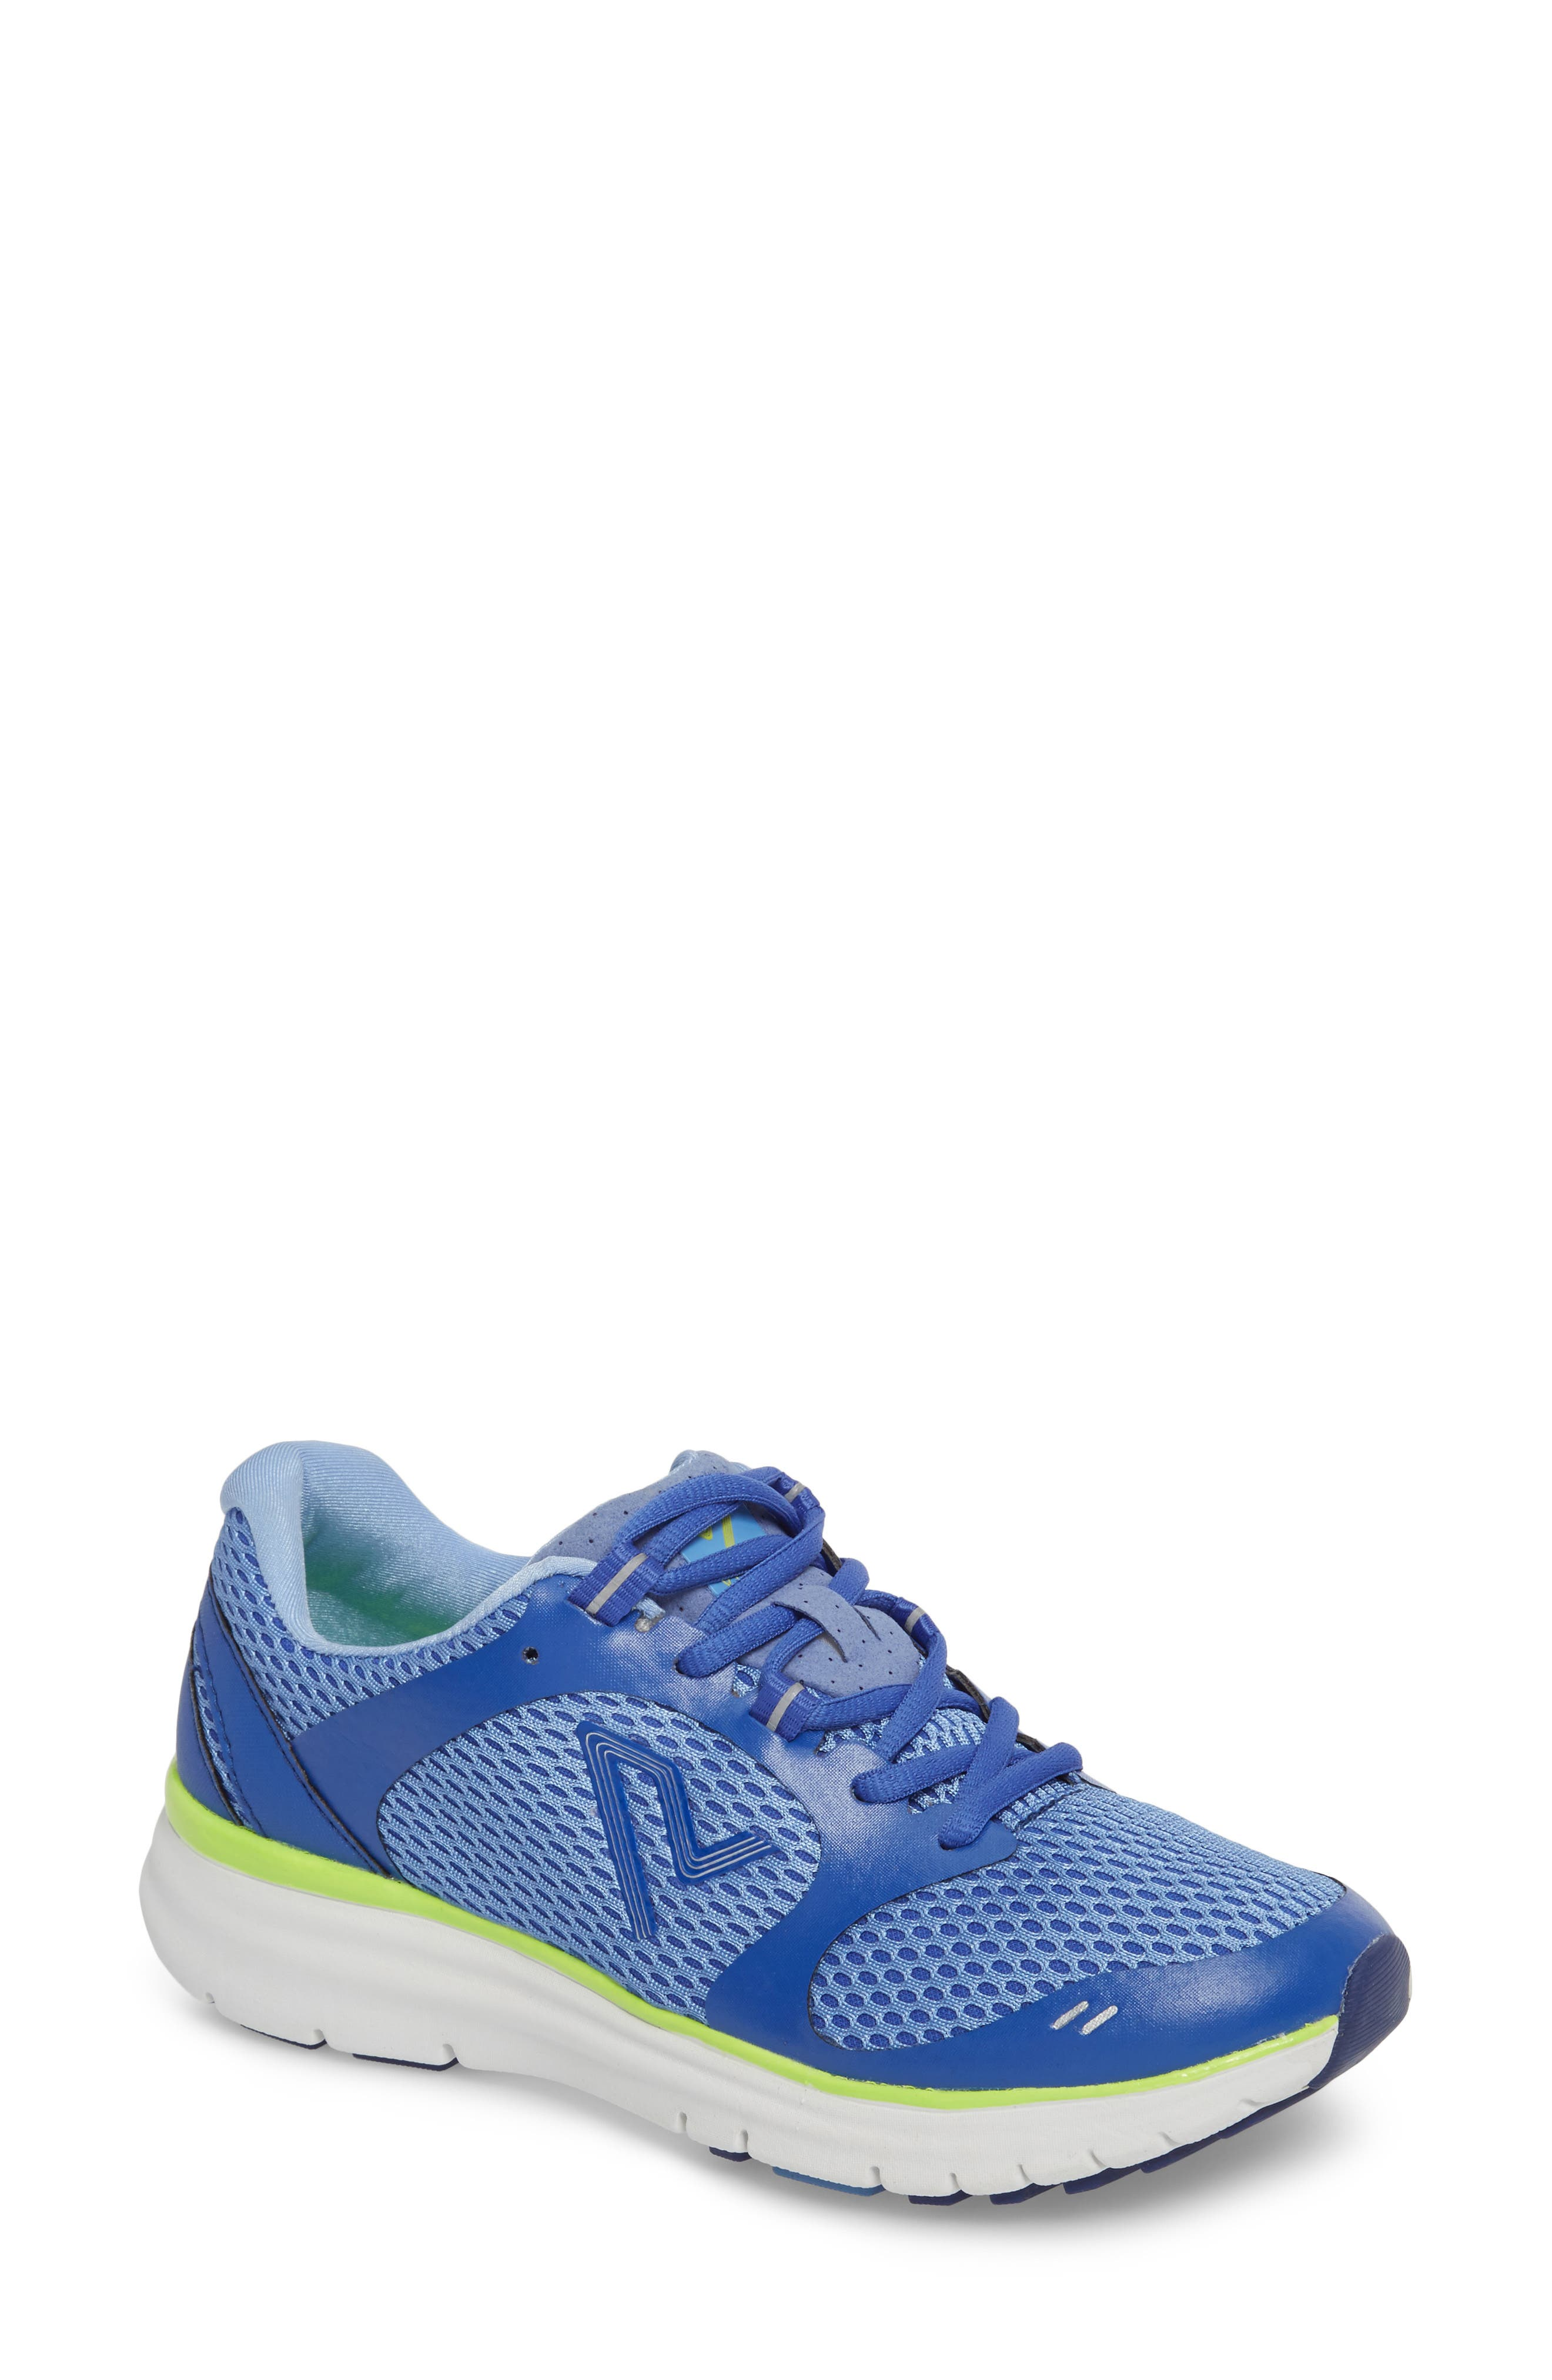 Elation Sneaker,                             Main thumbnail 1, color,                             BLUE/ YELLOW